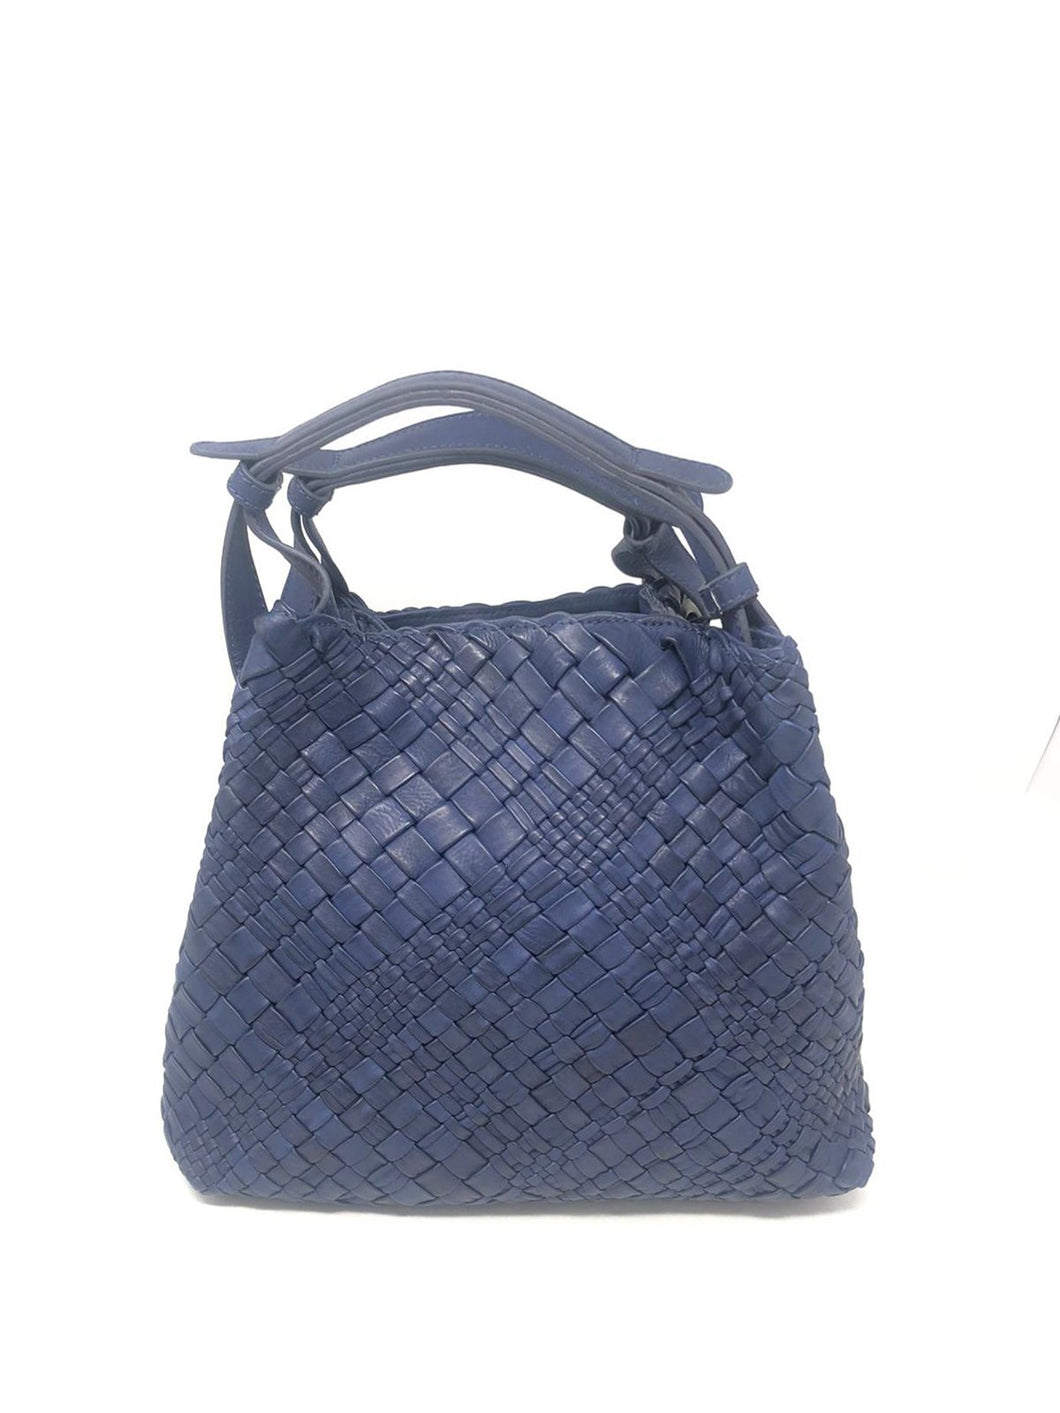 Massimo Frattasio Amalfi Plaited Handle Shopper Handbag in Navy